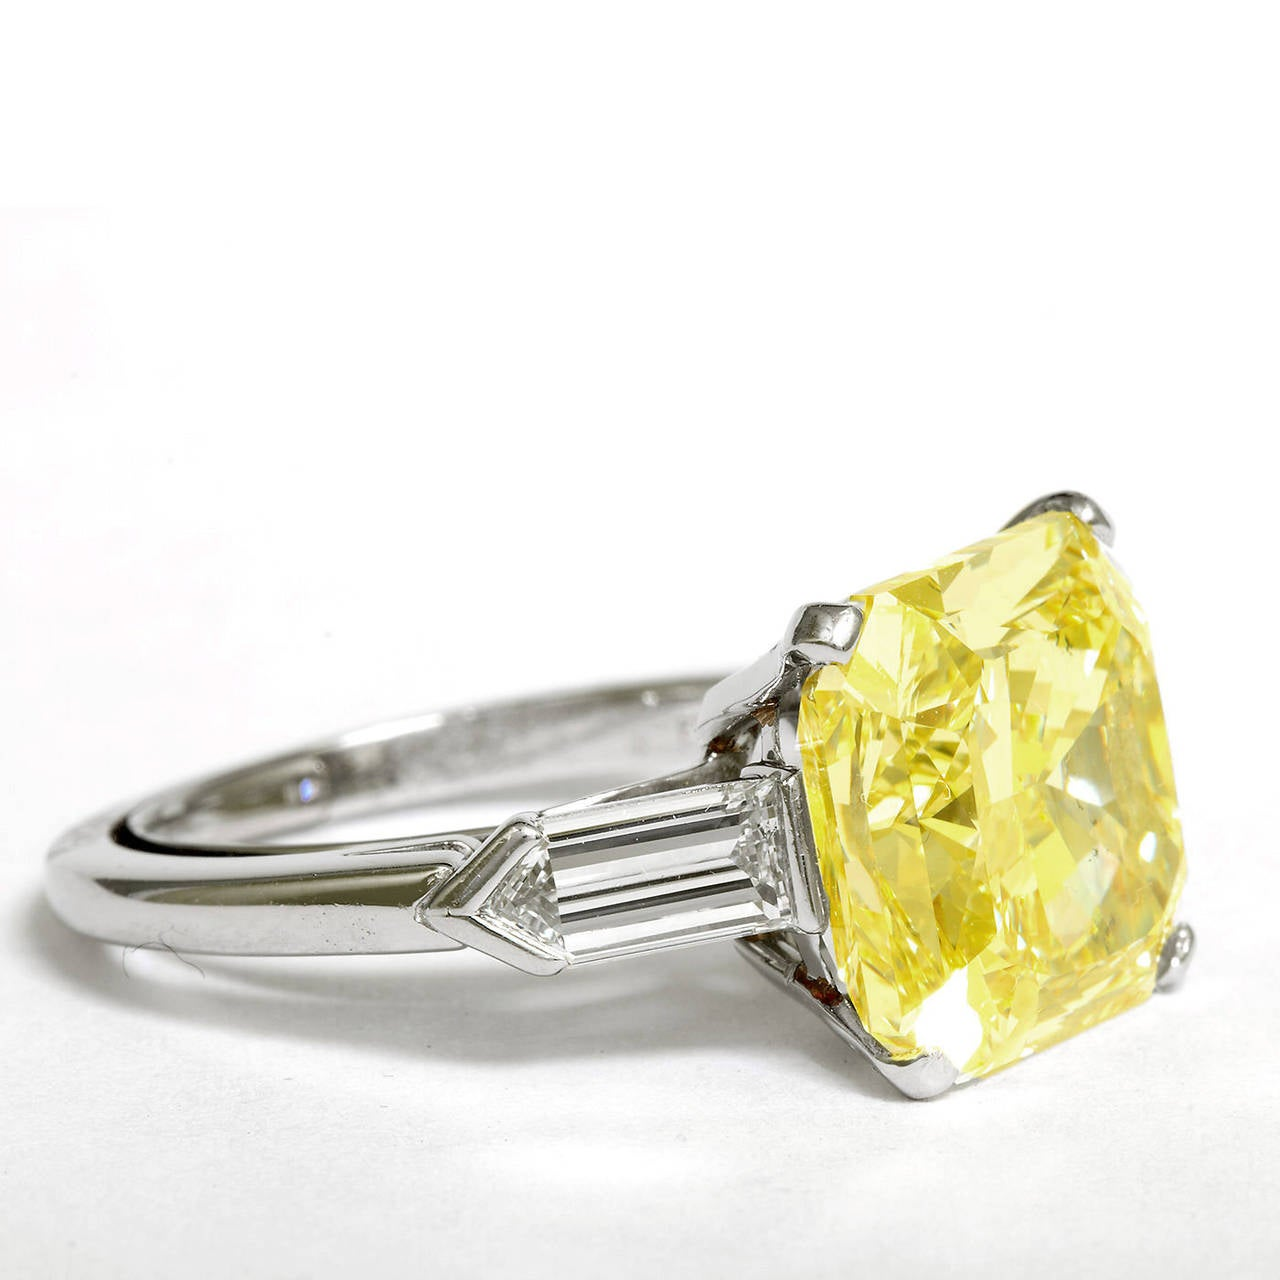 9.05 Carat Fancy Intense Yellow Square Radiant Diamond Engagement Ring GIA Cert In Excellent Condition For Sale In New York, NY